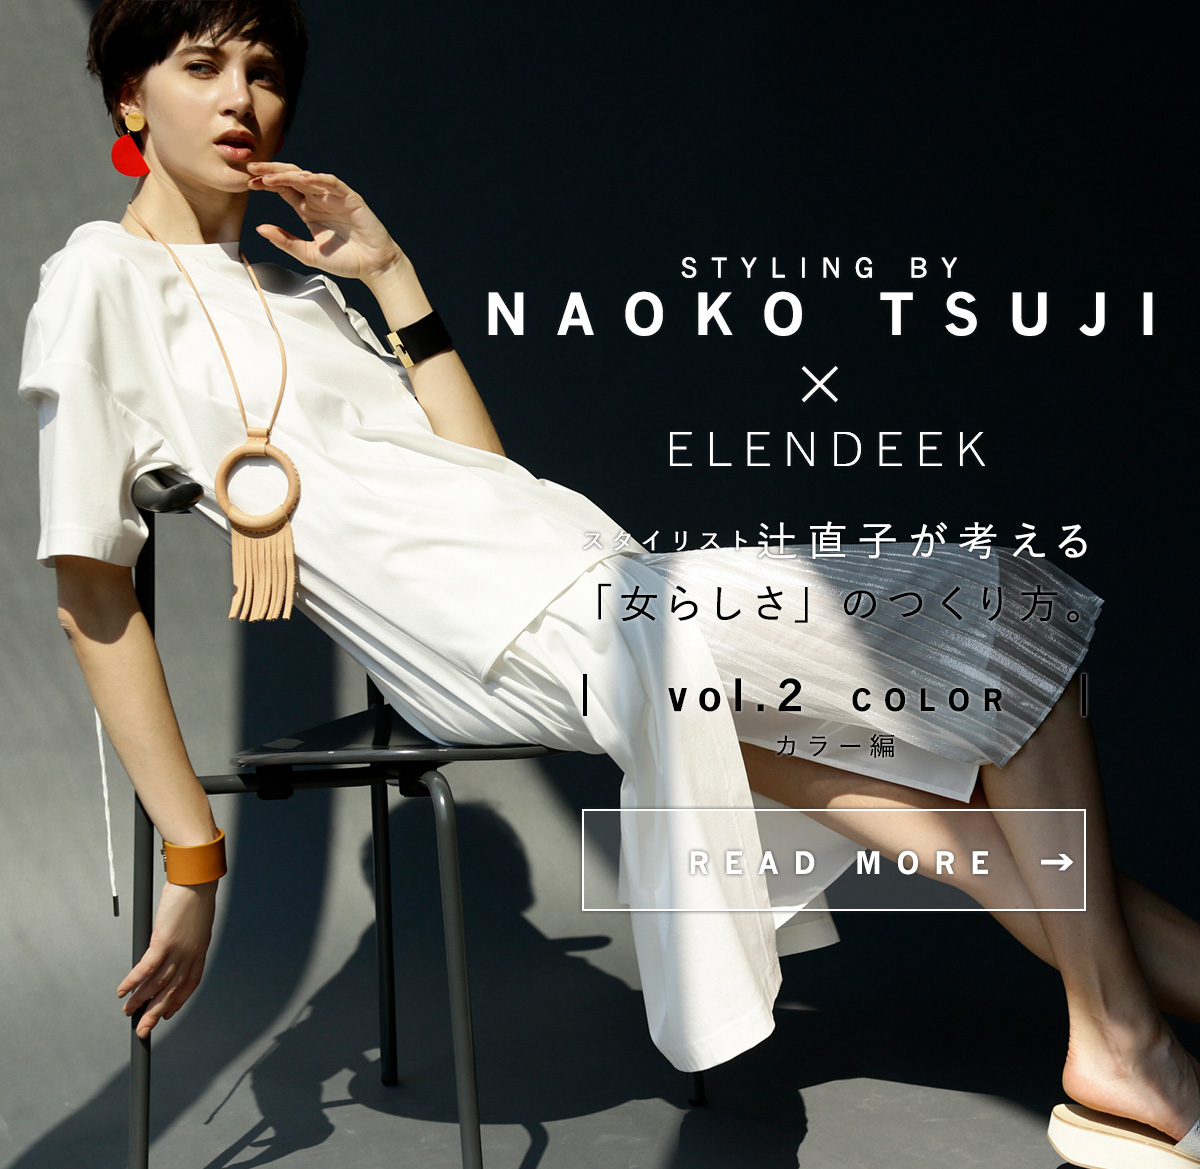 STYLING BY NAOKO TUSJI x ELENDEEK